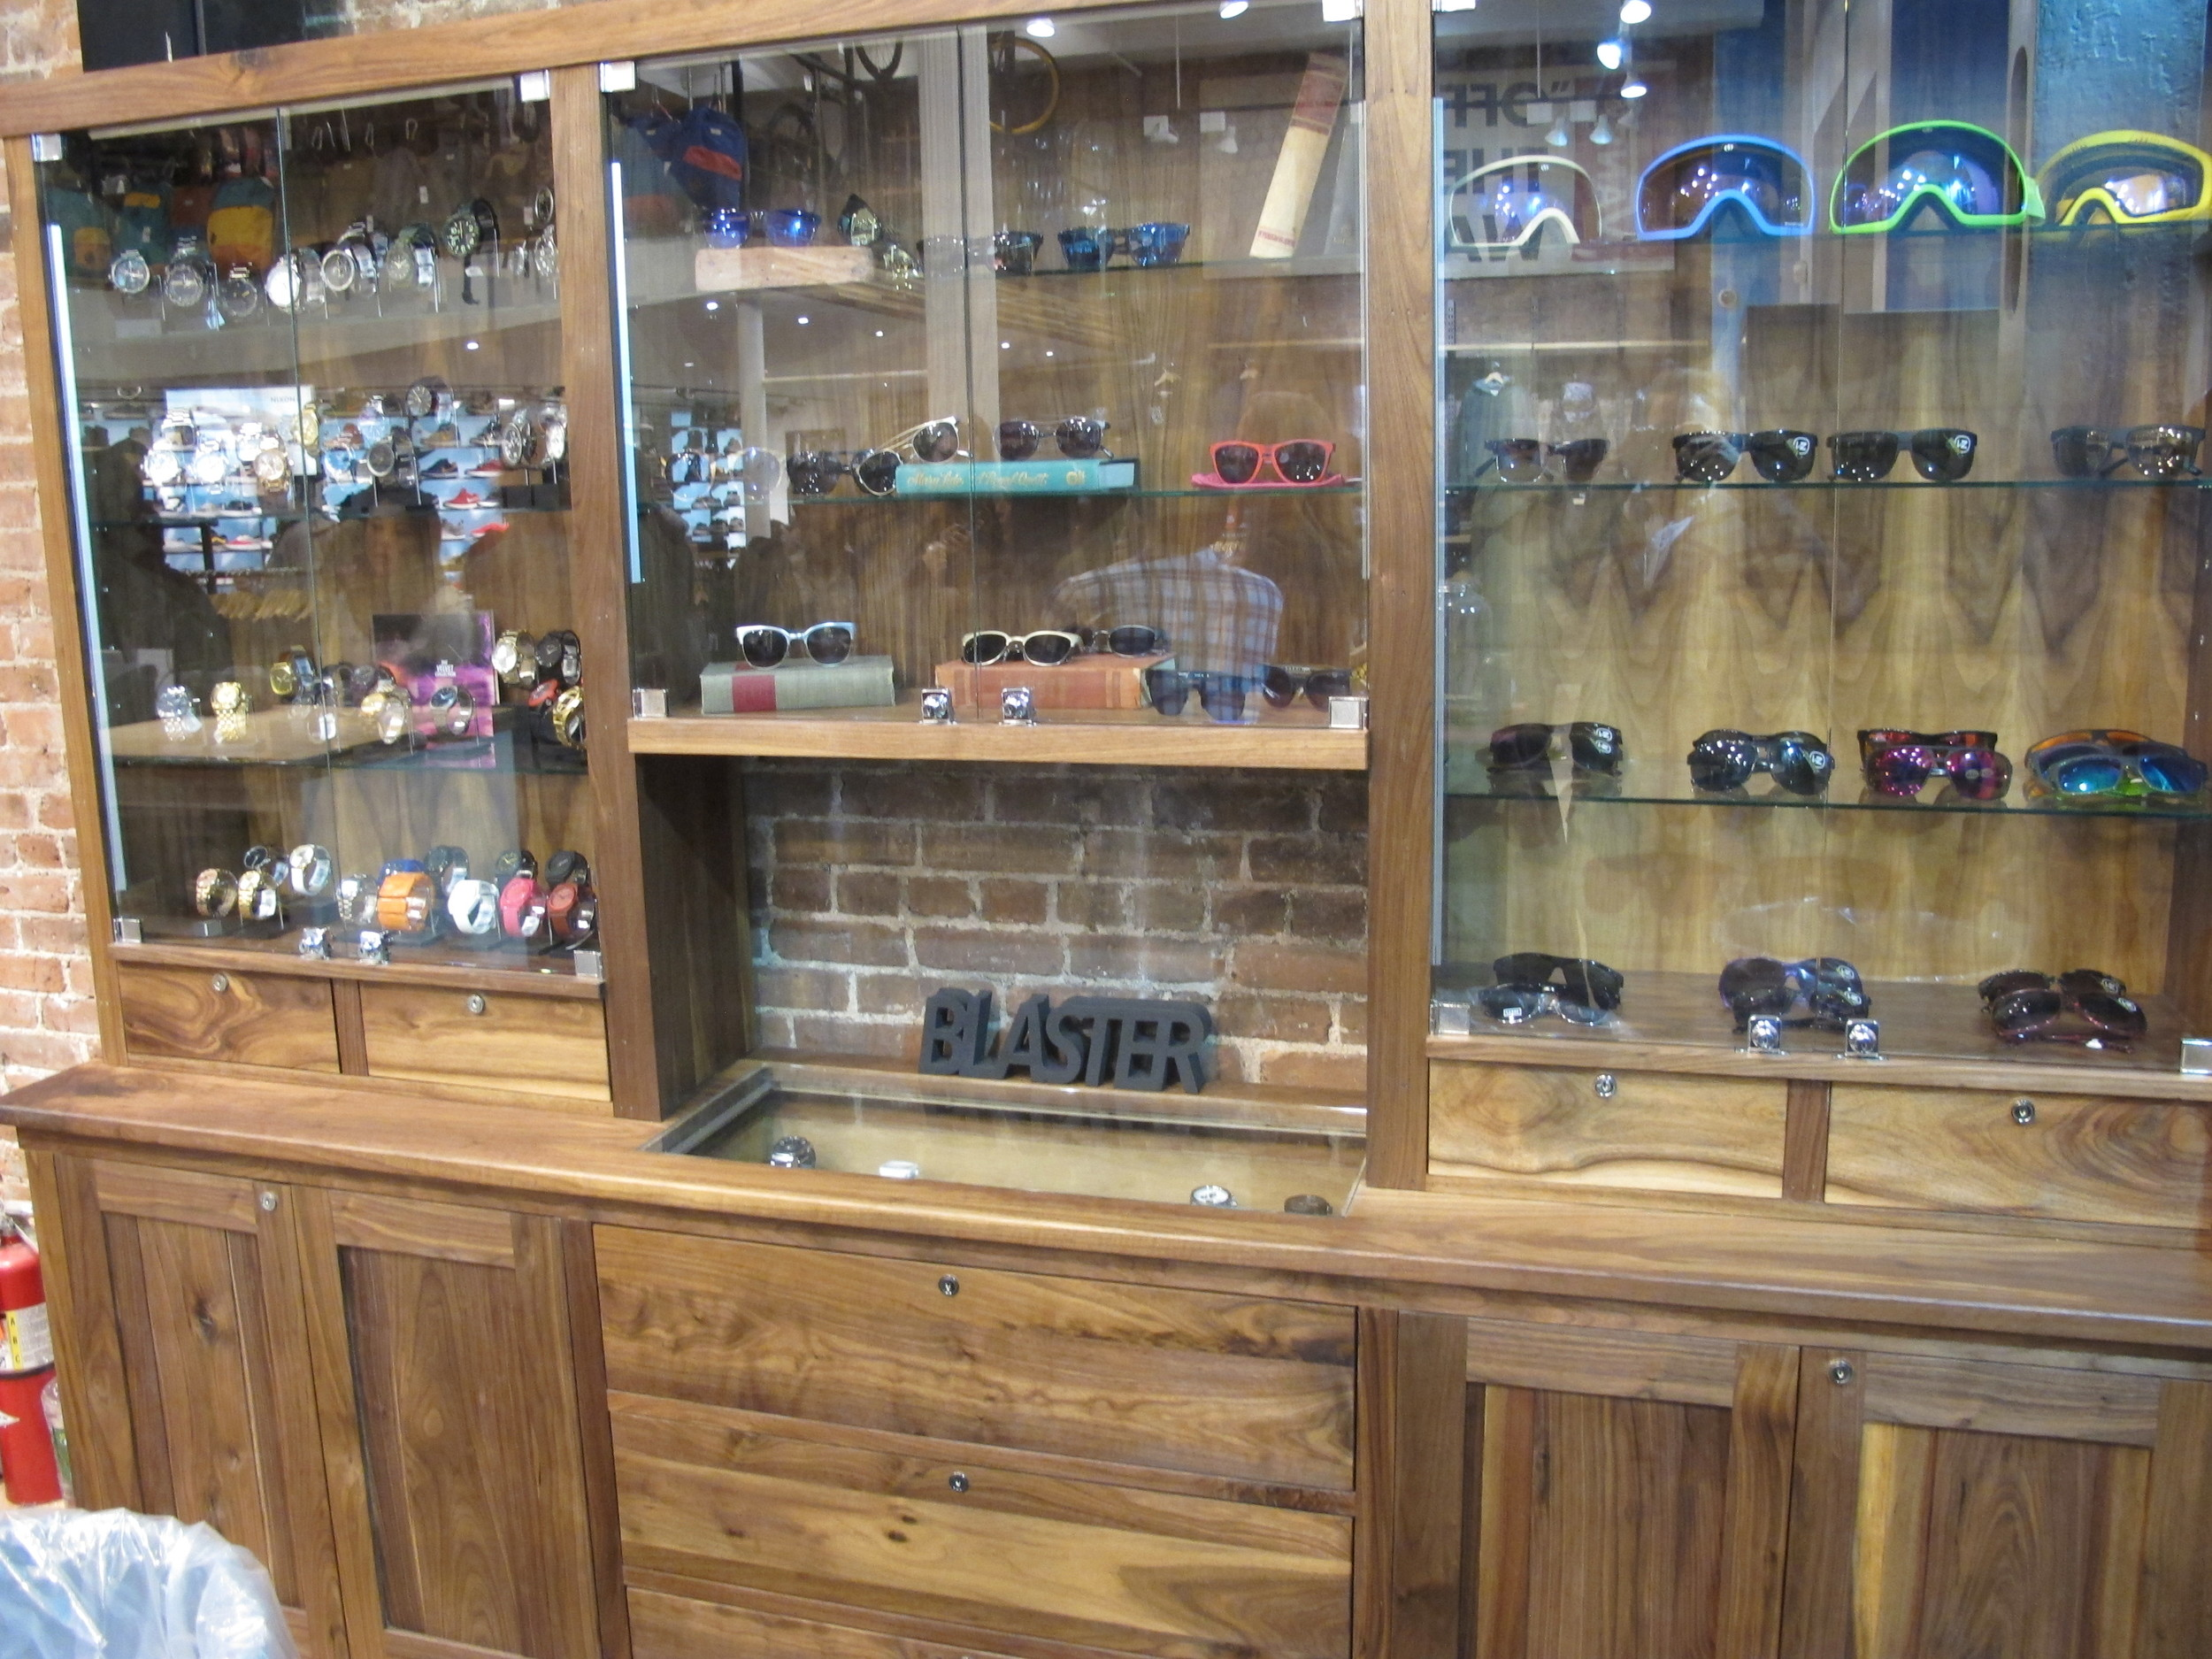 Blades Sunglass Display